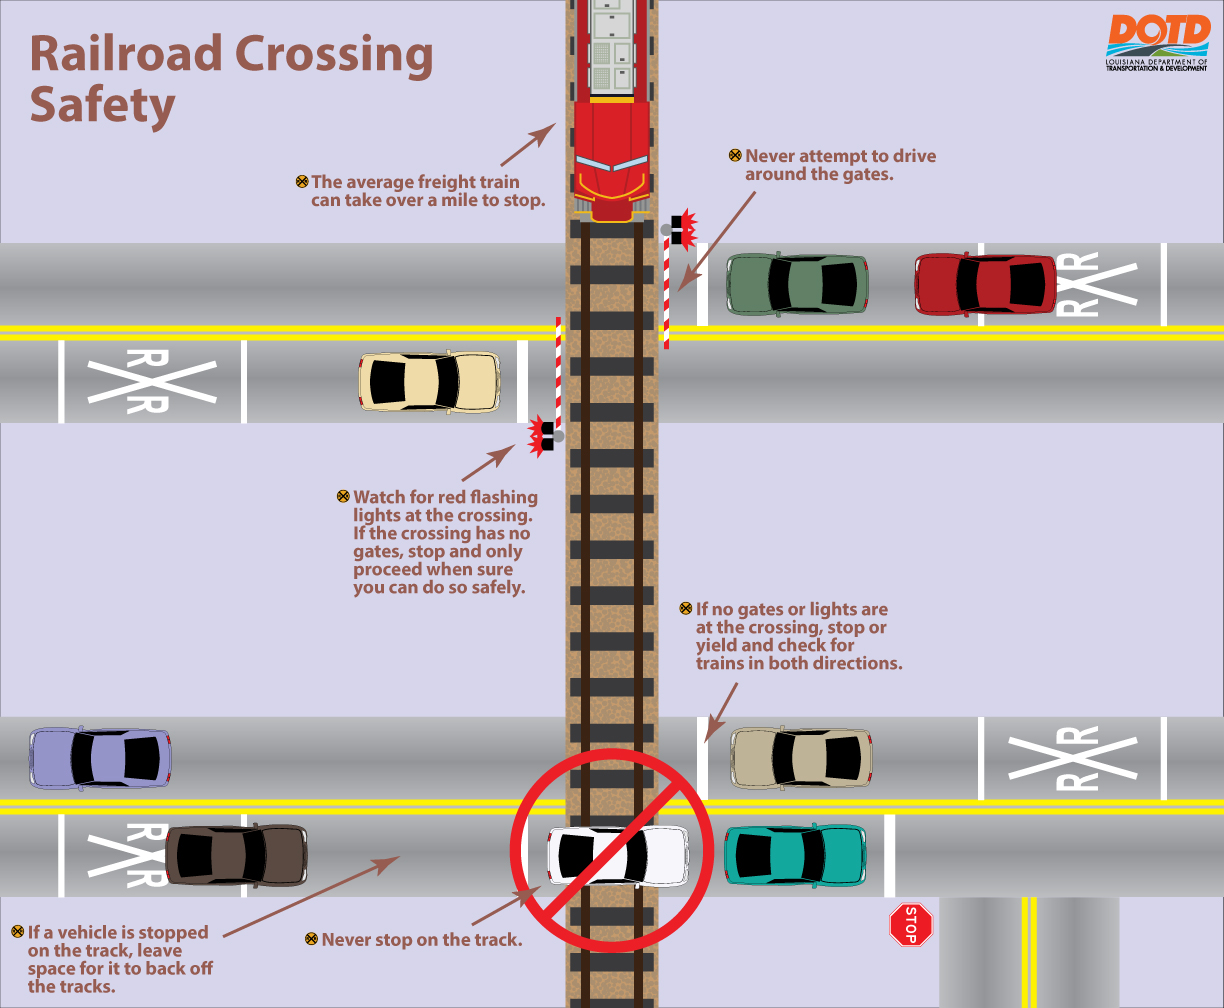 RR-crossing-safety.jpg